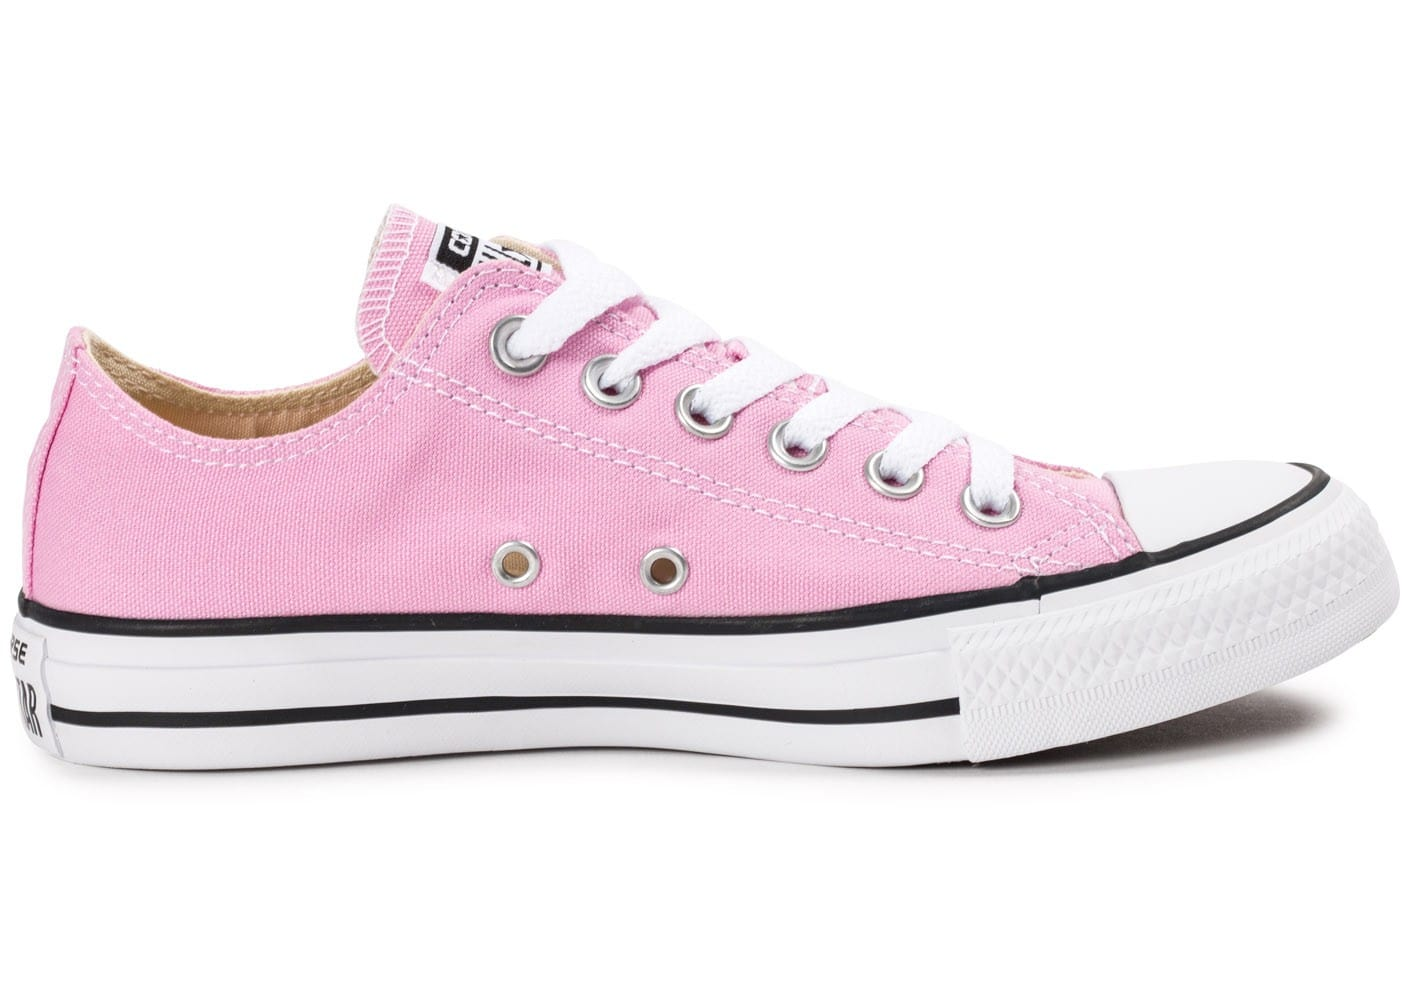 Converse Chuck Taylor All Star Low rose Chaussures